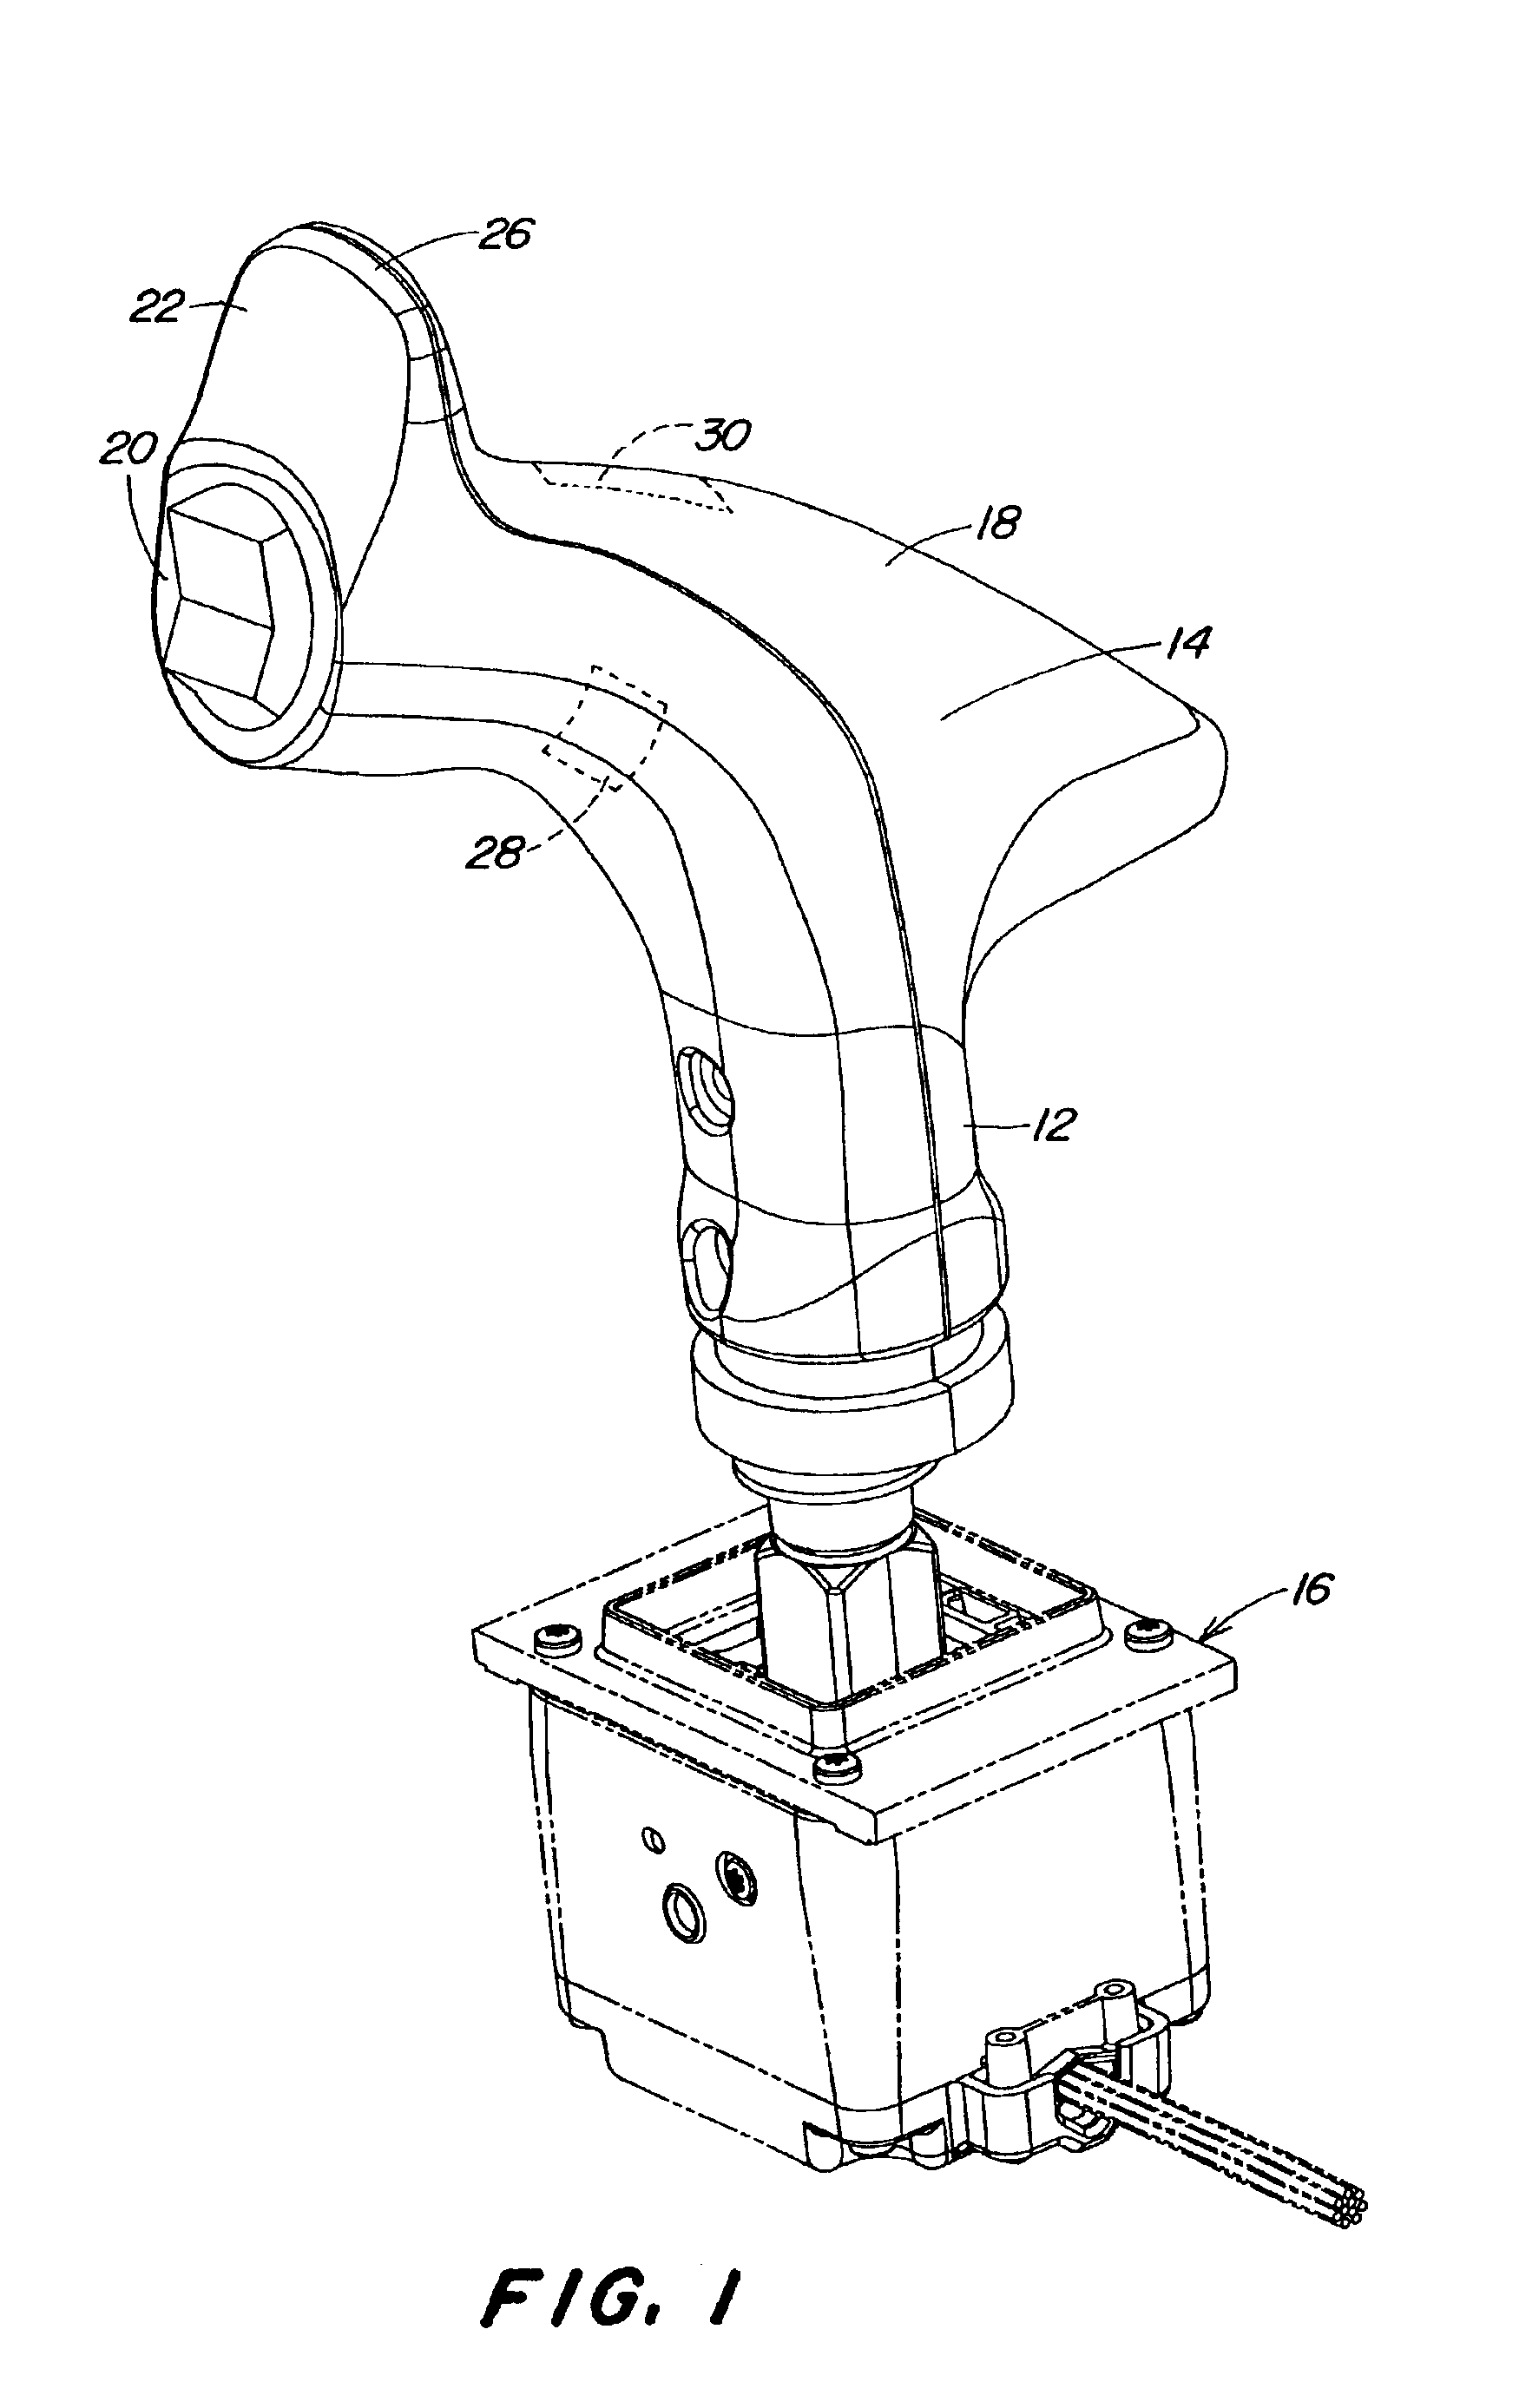 patent us6948398 - joystick with enabling sensors